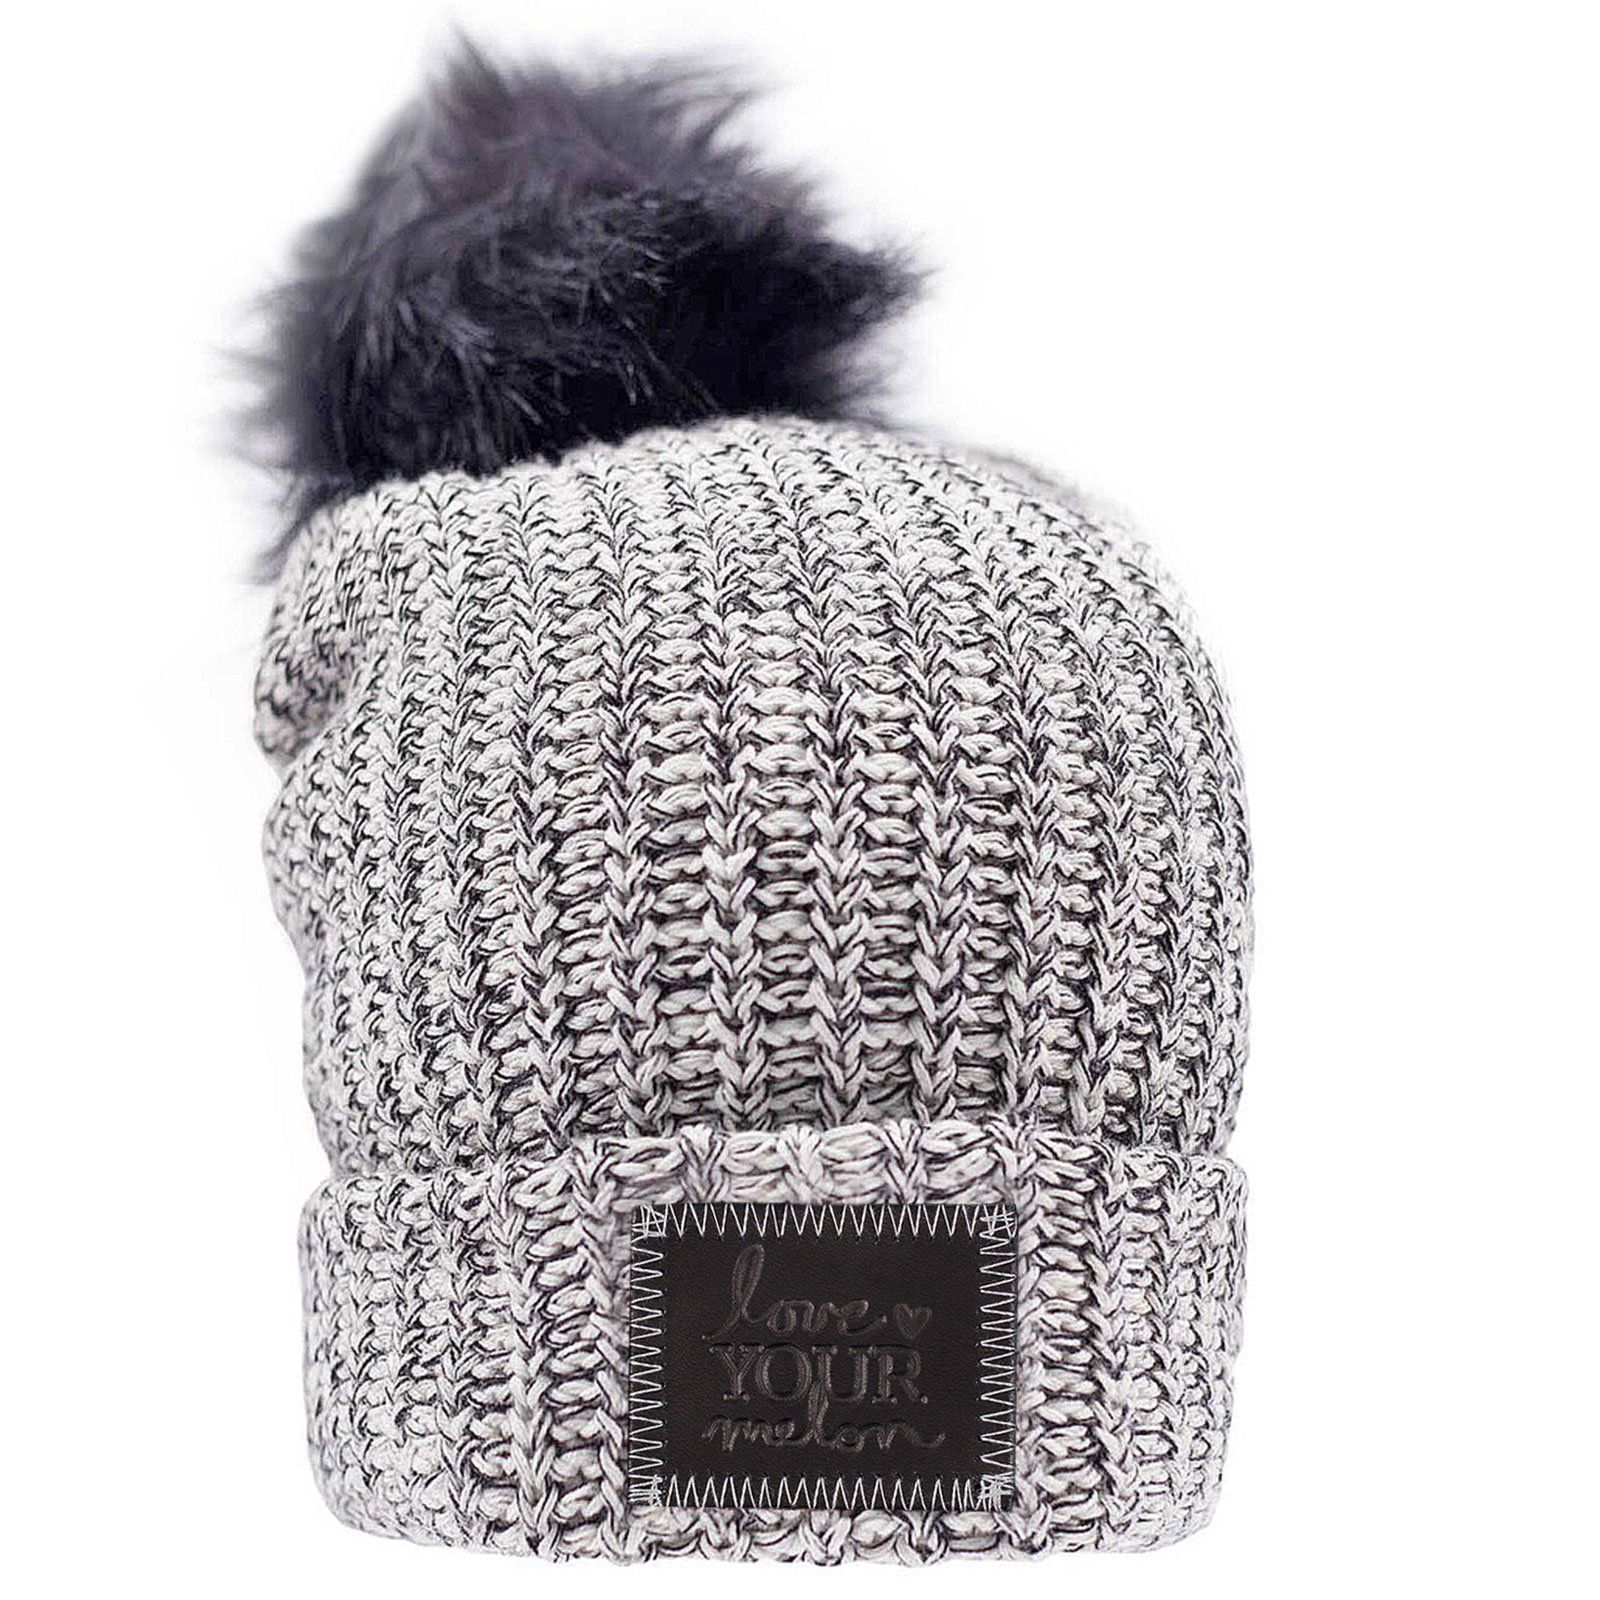 8c5359b8005 Love Your Melon Black Speckled Pom Beanie (Black Leather Patch ...